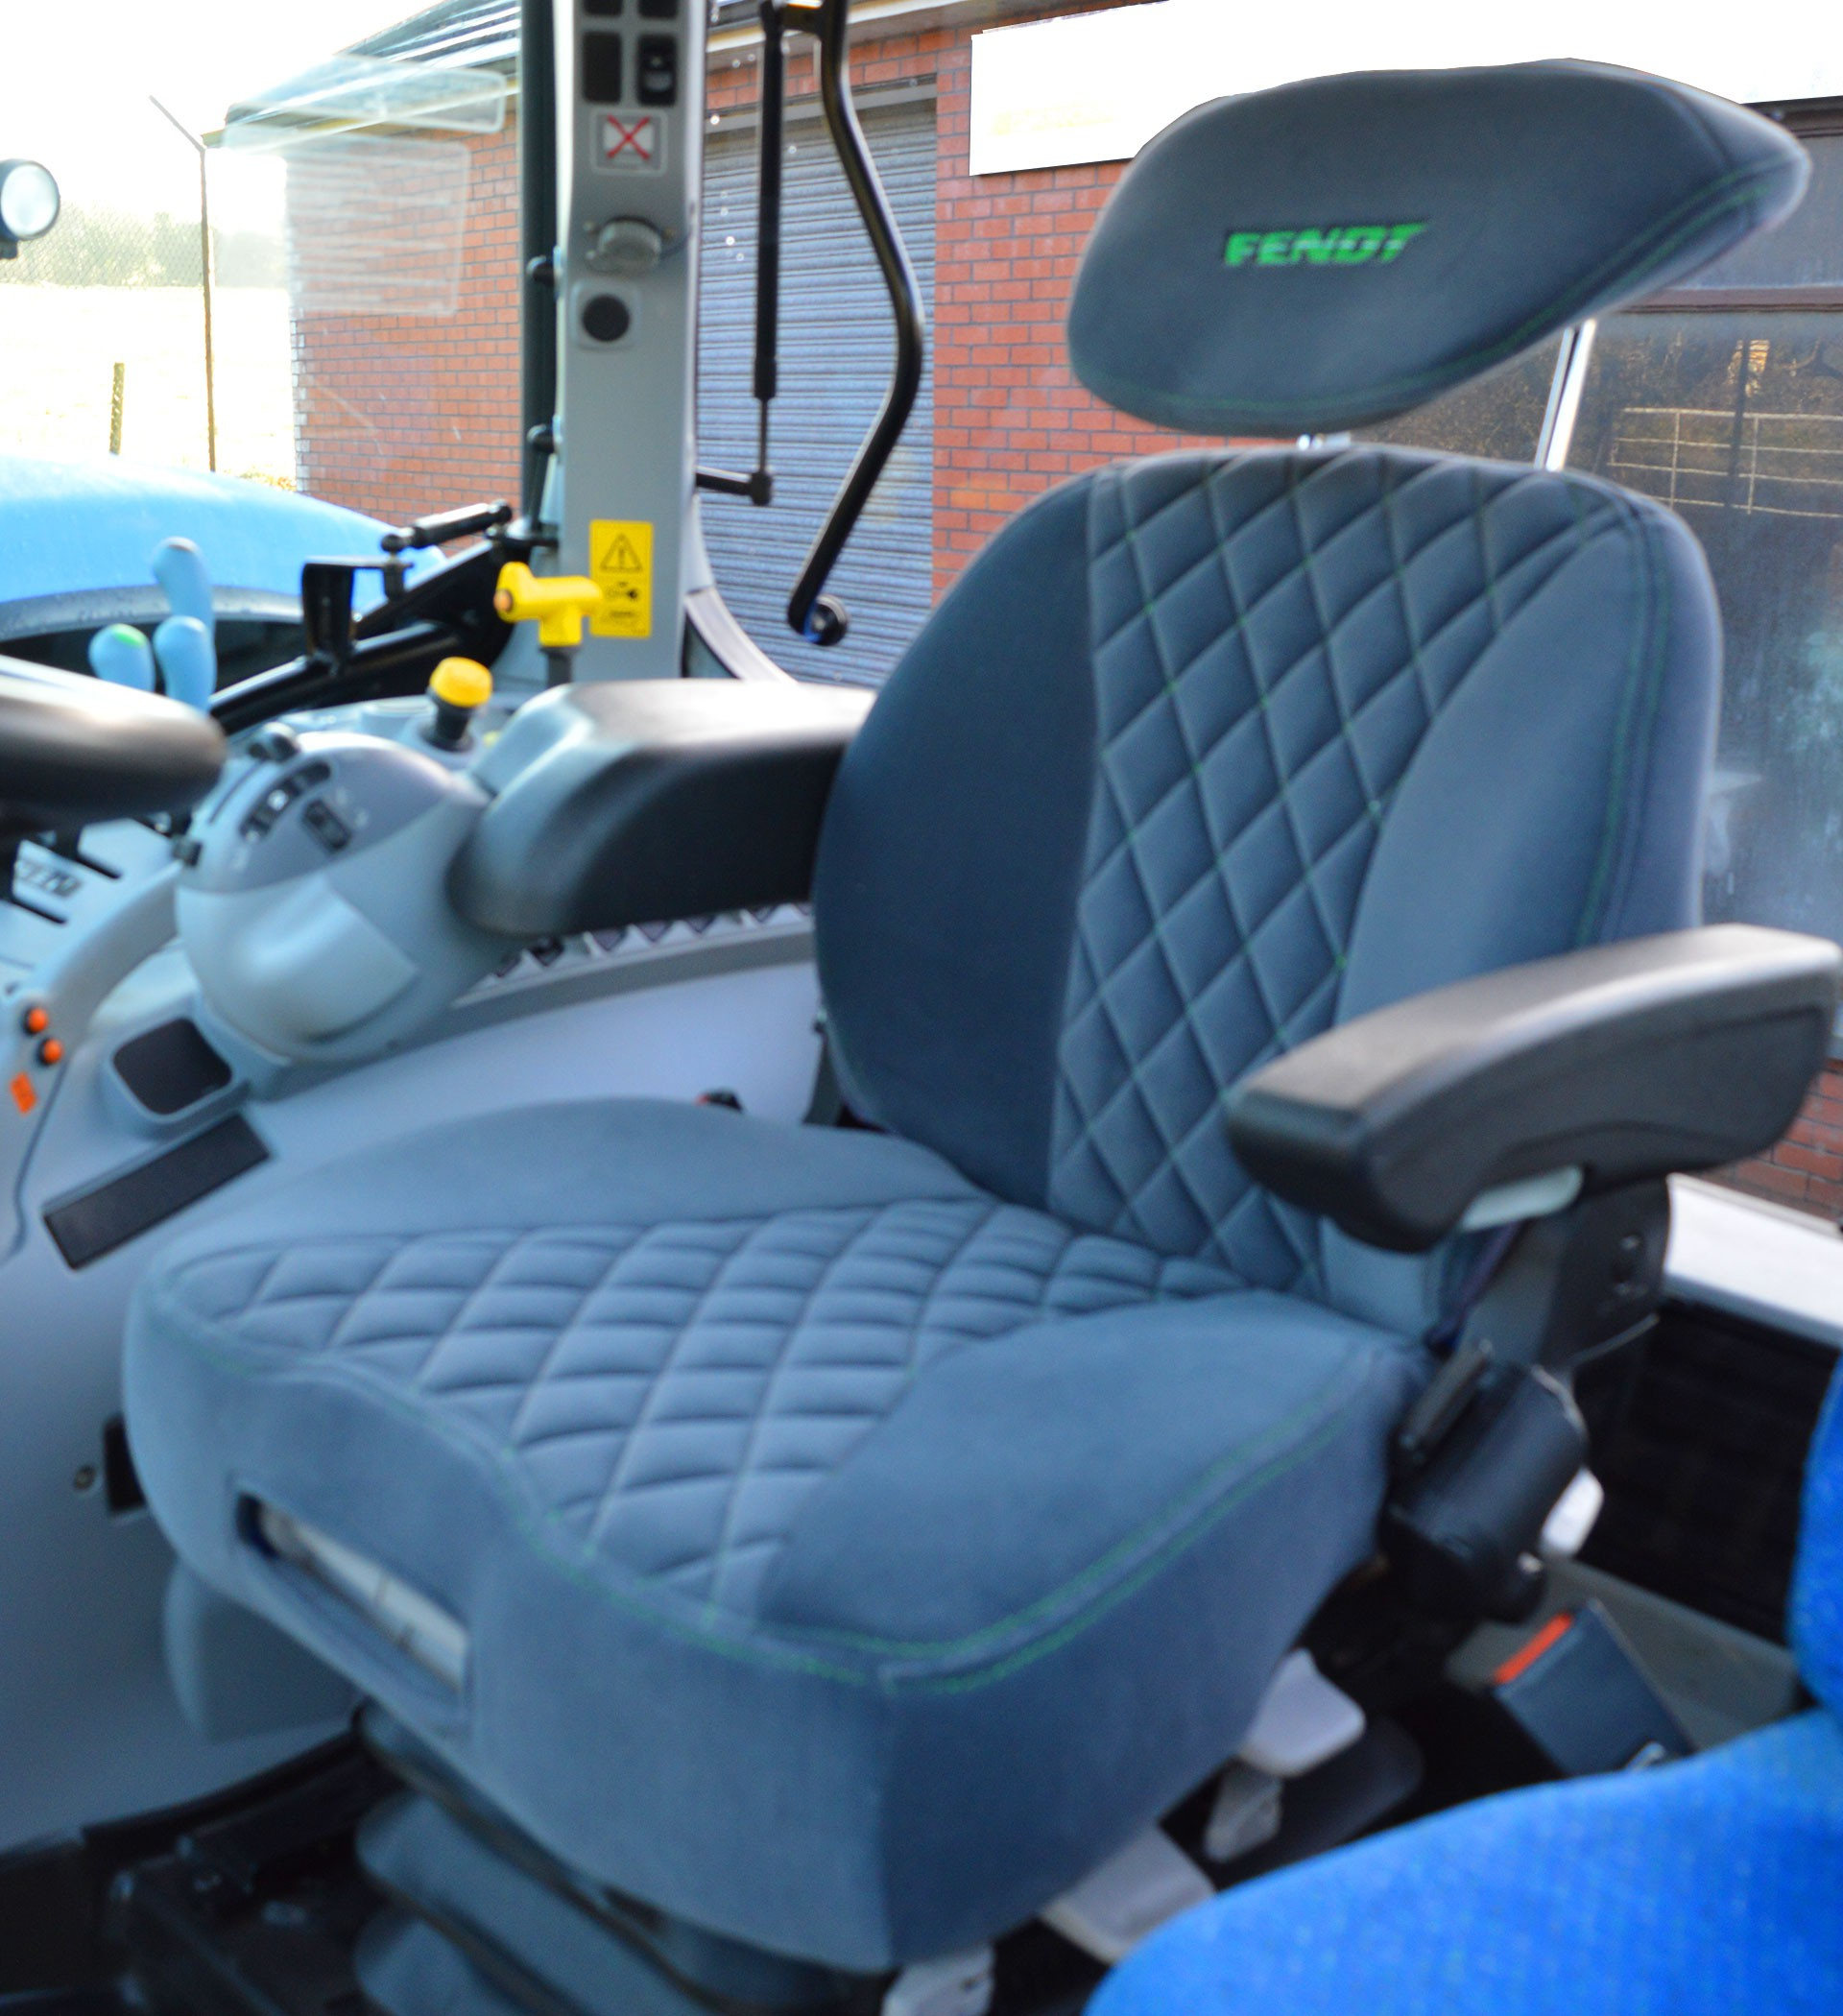 Fendt Tractor Grammer Maximo Dynamic Tailored Seat Covers